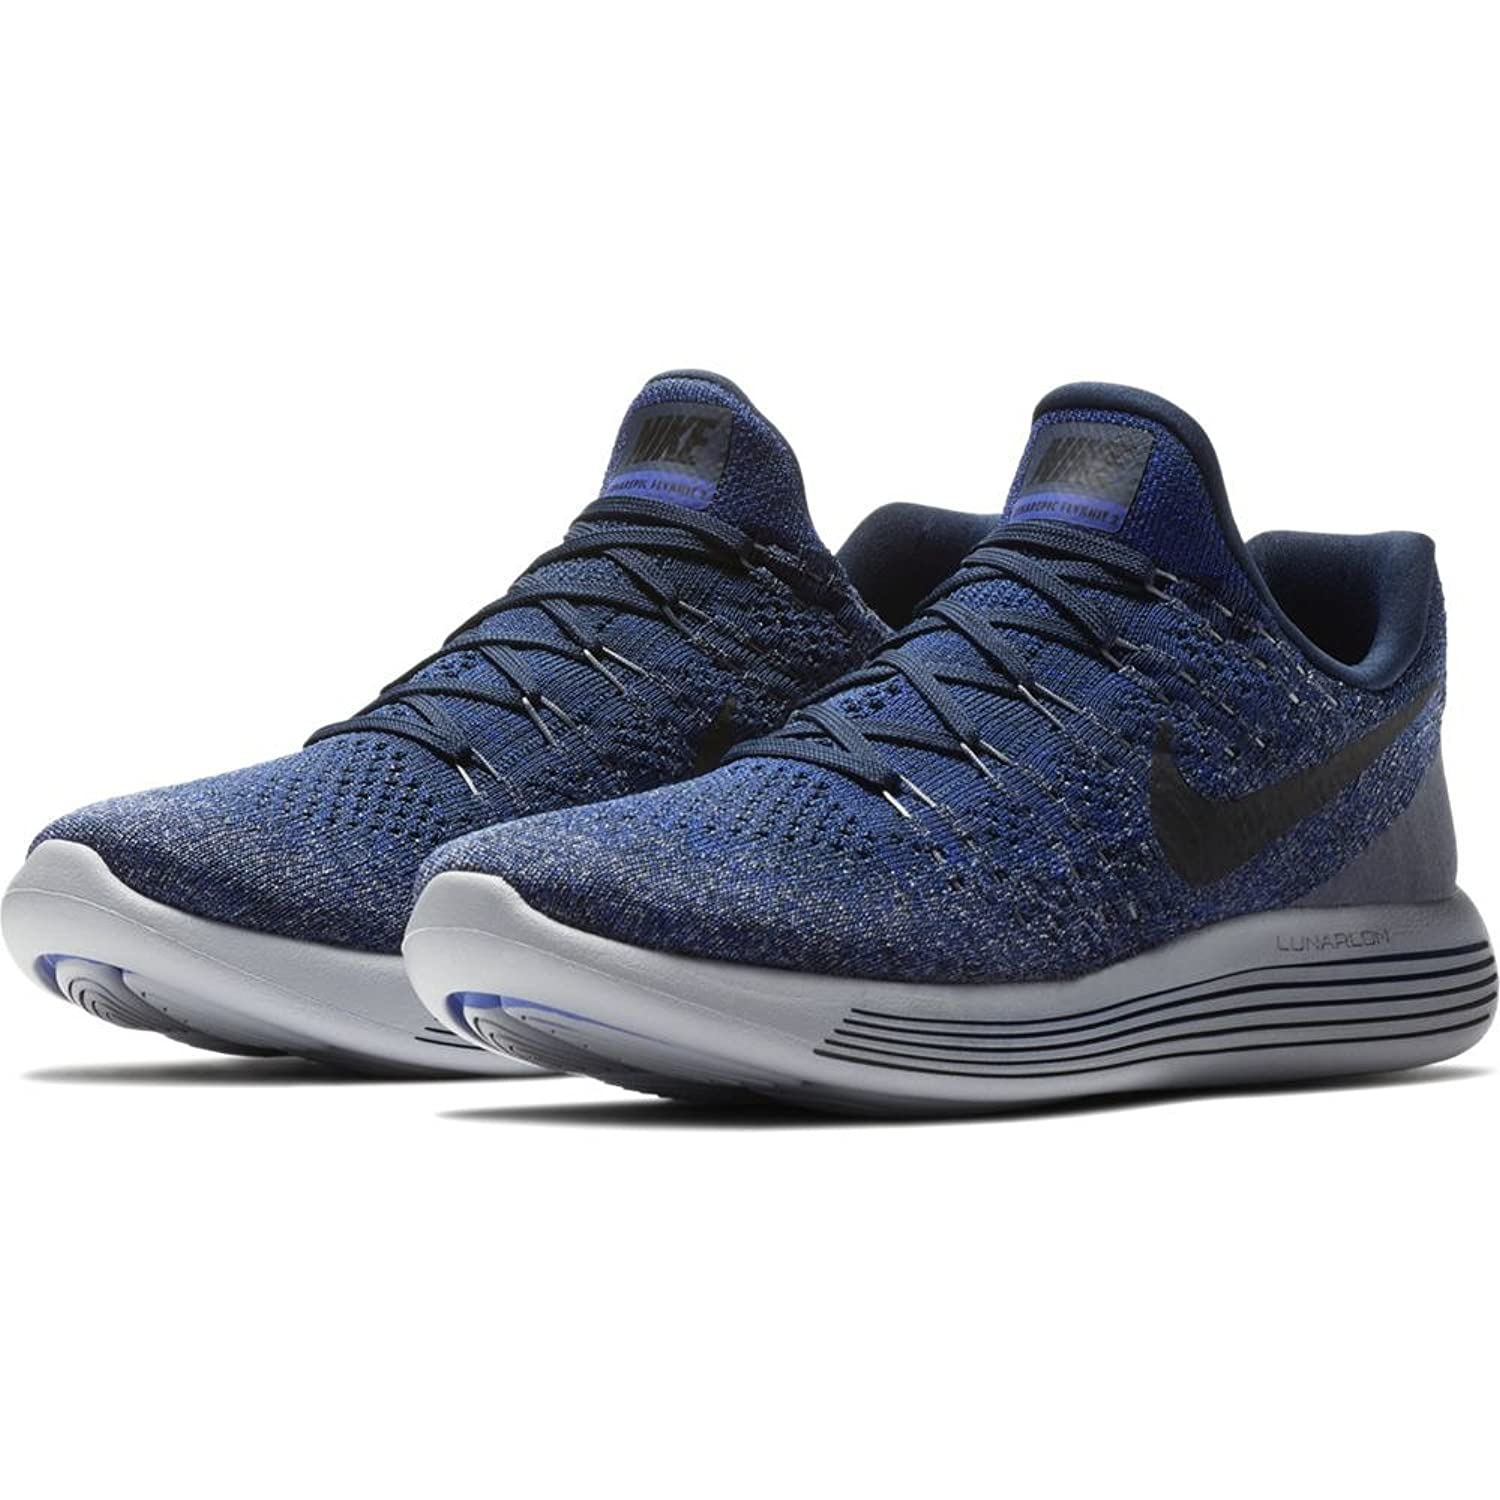 NIKE Mens Lunarepic Low Flyknit 2 (College Navy/Black-Concord, 7.5 D(M) US) B004VA1BUI